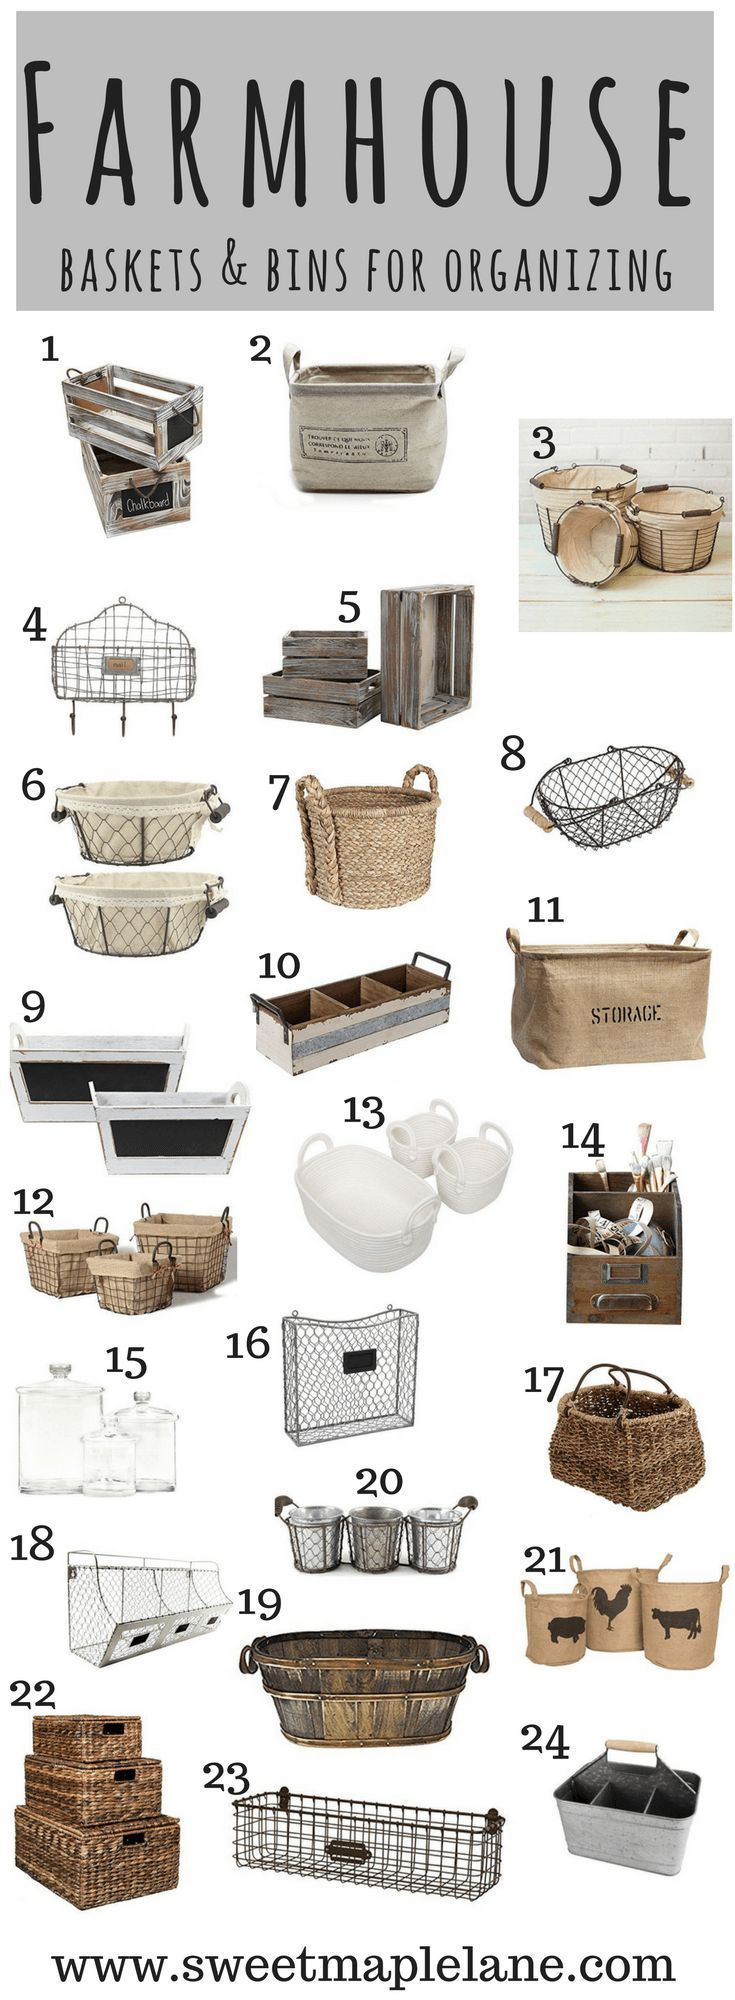 cool Tendance Basket 2017 - The ultimate farmhouse bins and baskets roundup! Great for organizing and adding...